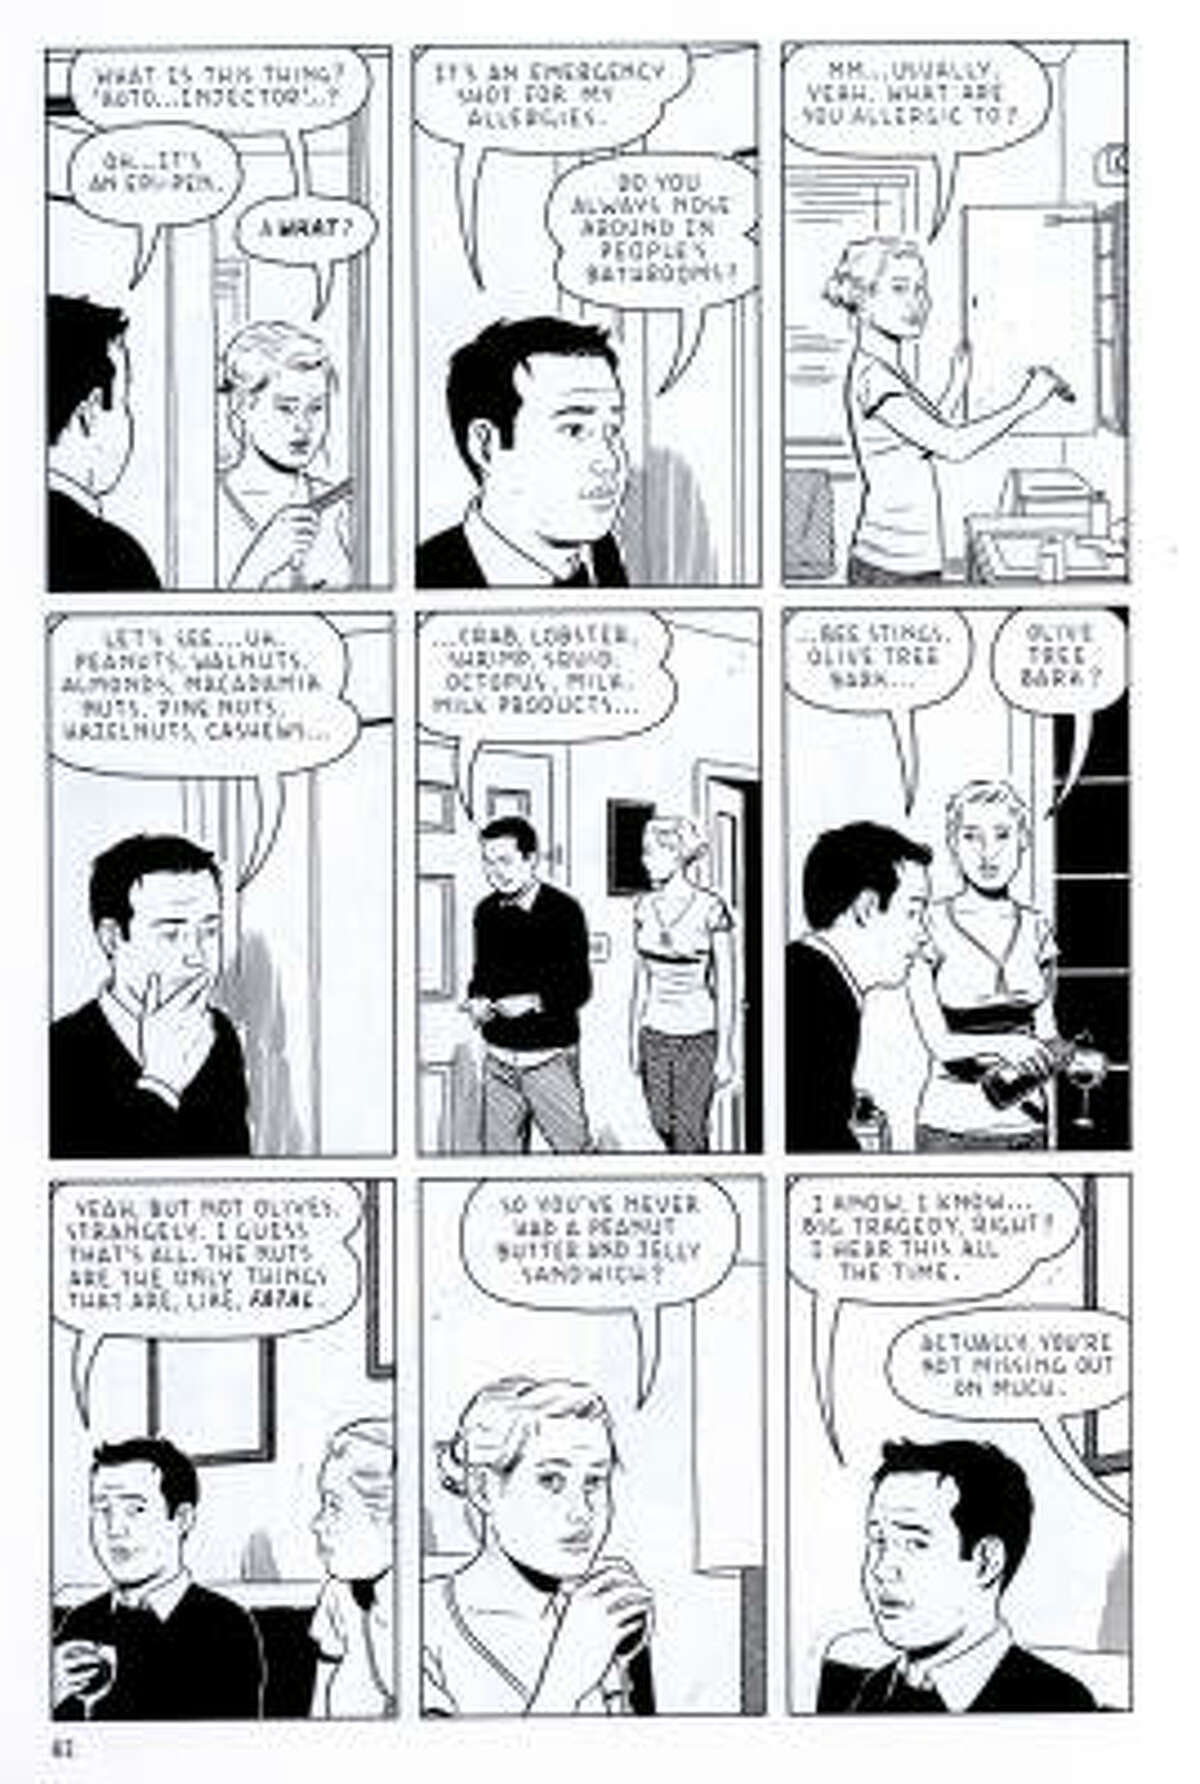 The Shortcomings comic by Adrian Tomine includes characters like Ben Takaka, a guy who's more relatable than likeable.